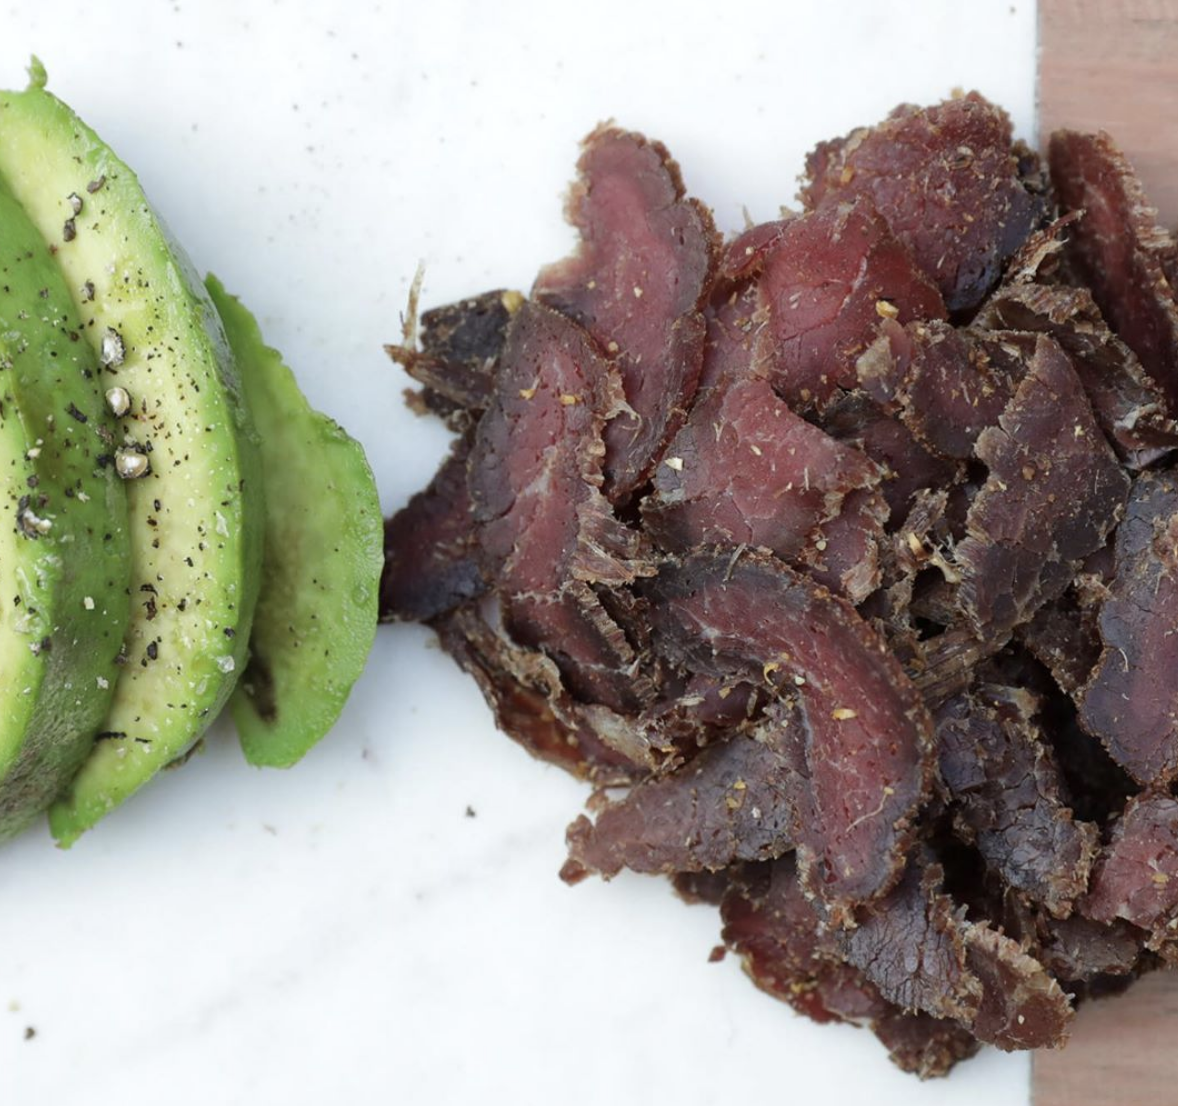 """Biltong is dried beef made with roasted coriander seeds and black pepper.""—WatercoloredLife"